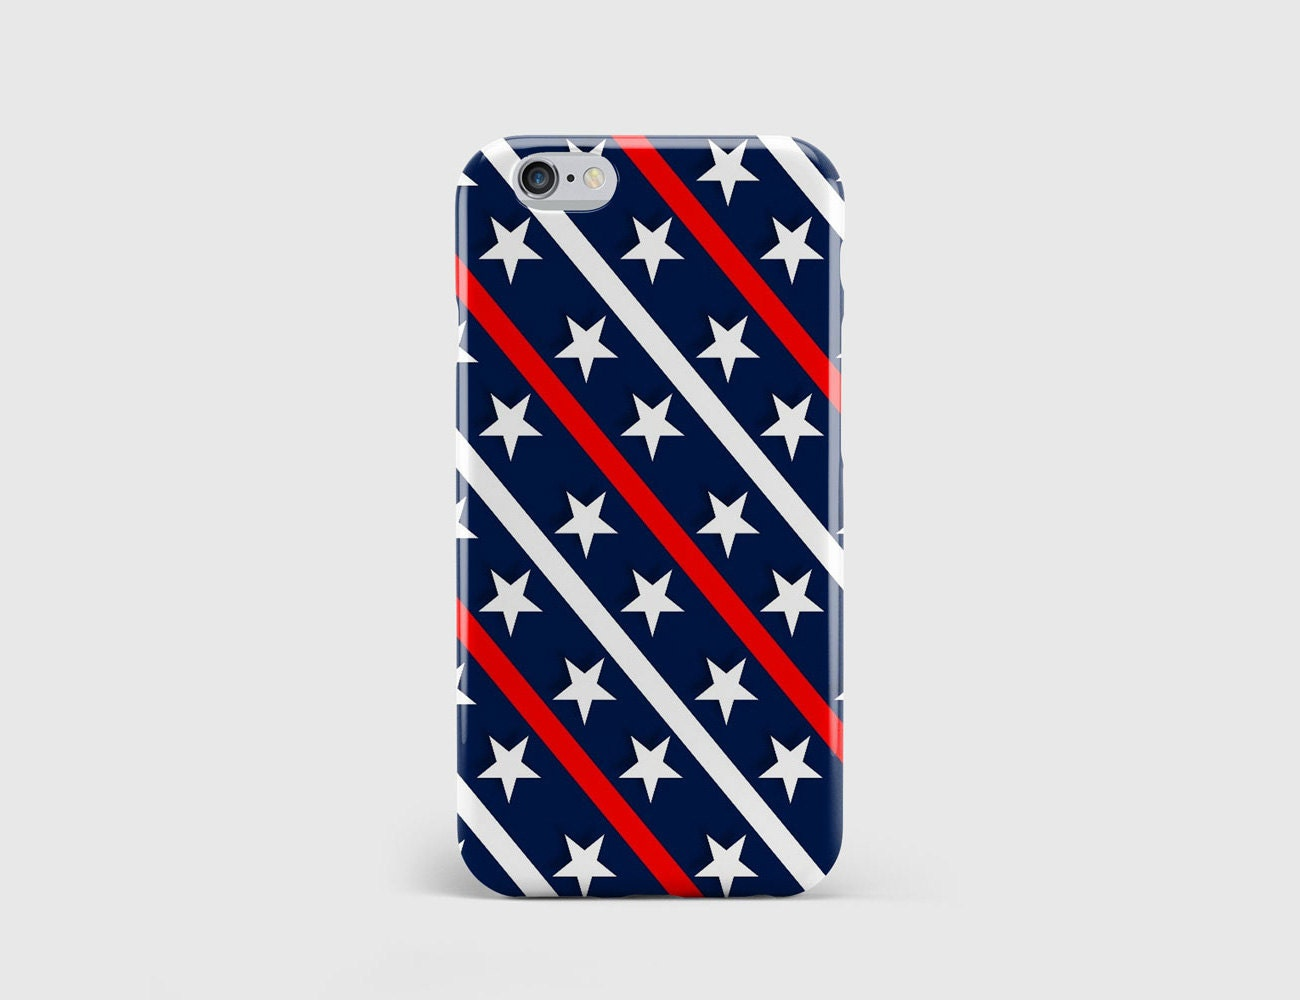 Independence Day iPhone Case Stars and Stripes American United States Homeland Phone Case Cover iPhone 7 iPhone 6 iPhone 5  hcpp164